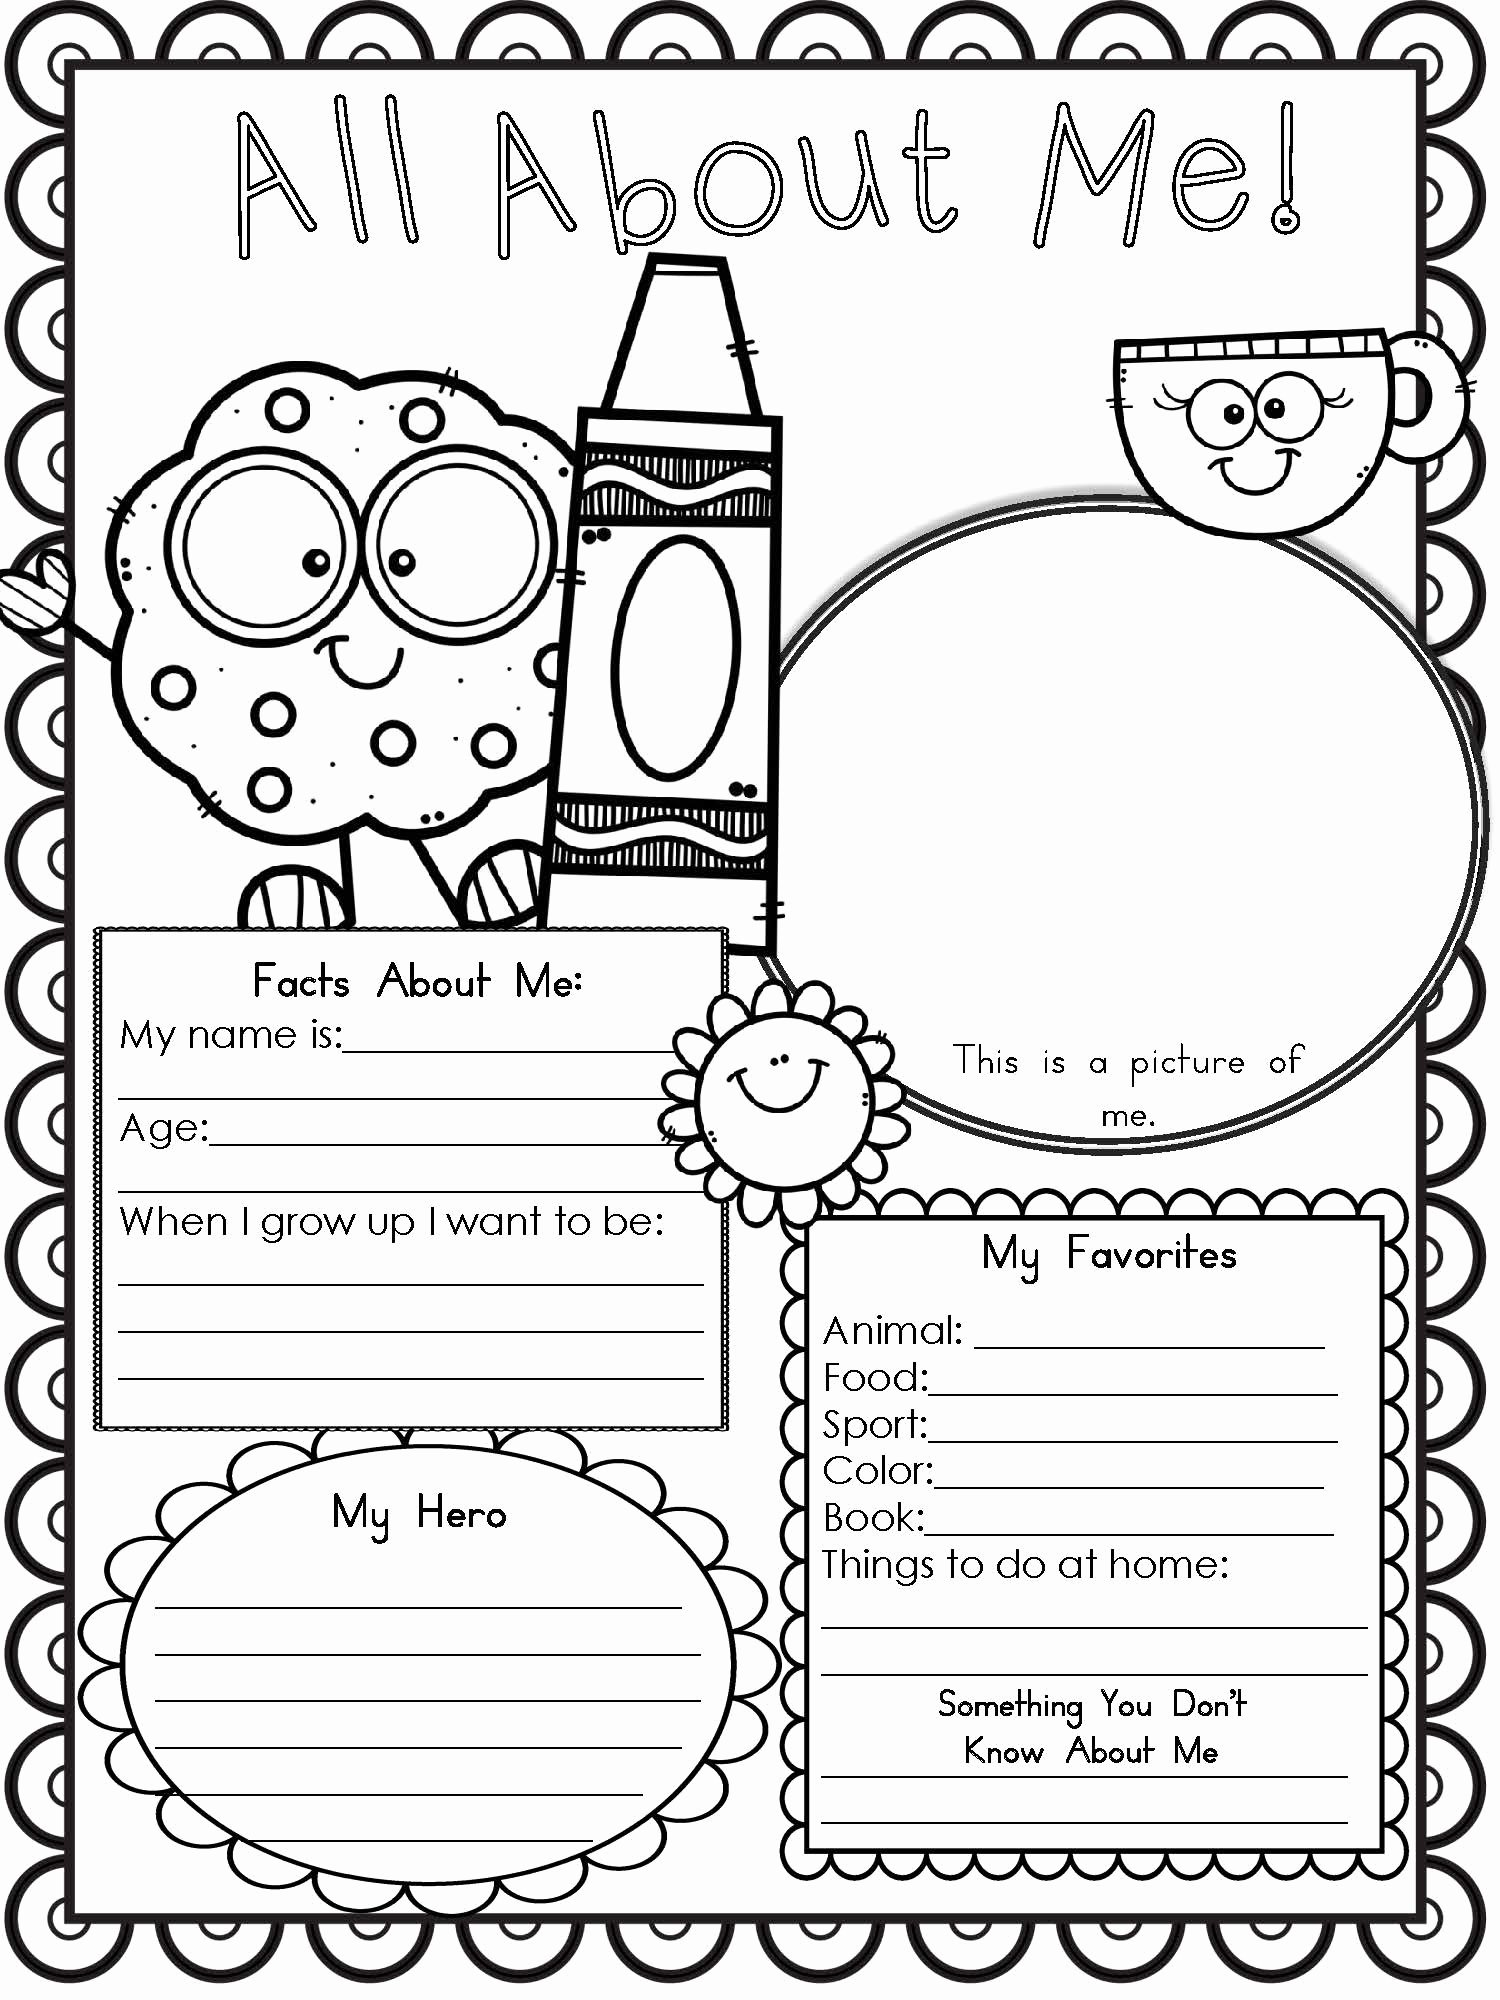 All About Me Worksheet Preschool Inspirational Free Printable All About Me Worksheet Modern Homeschool